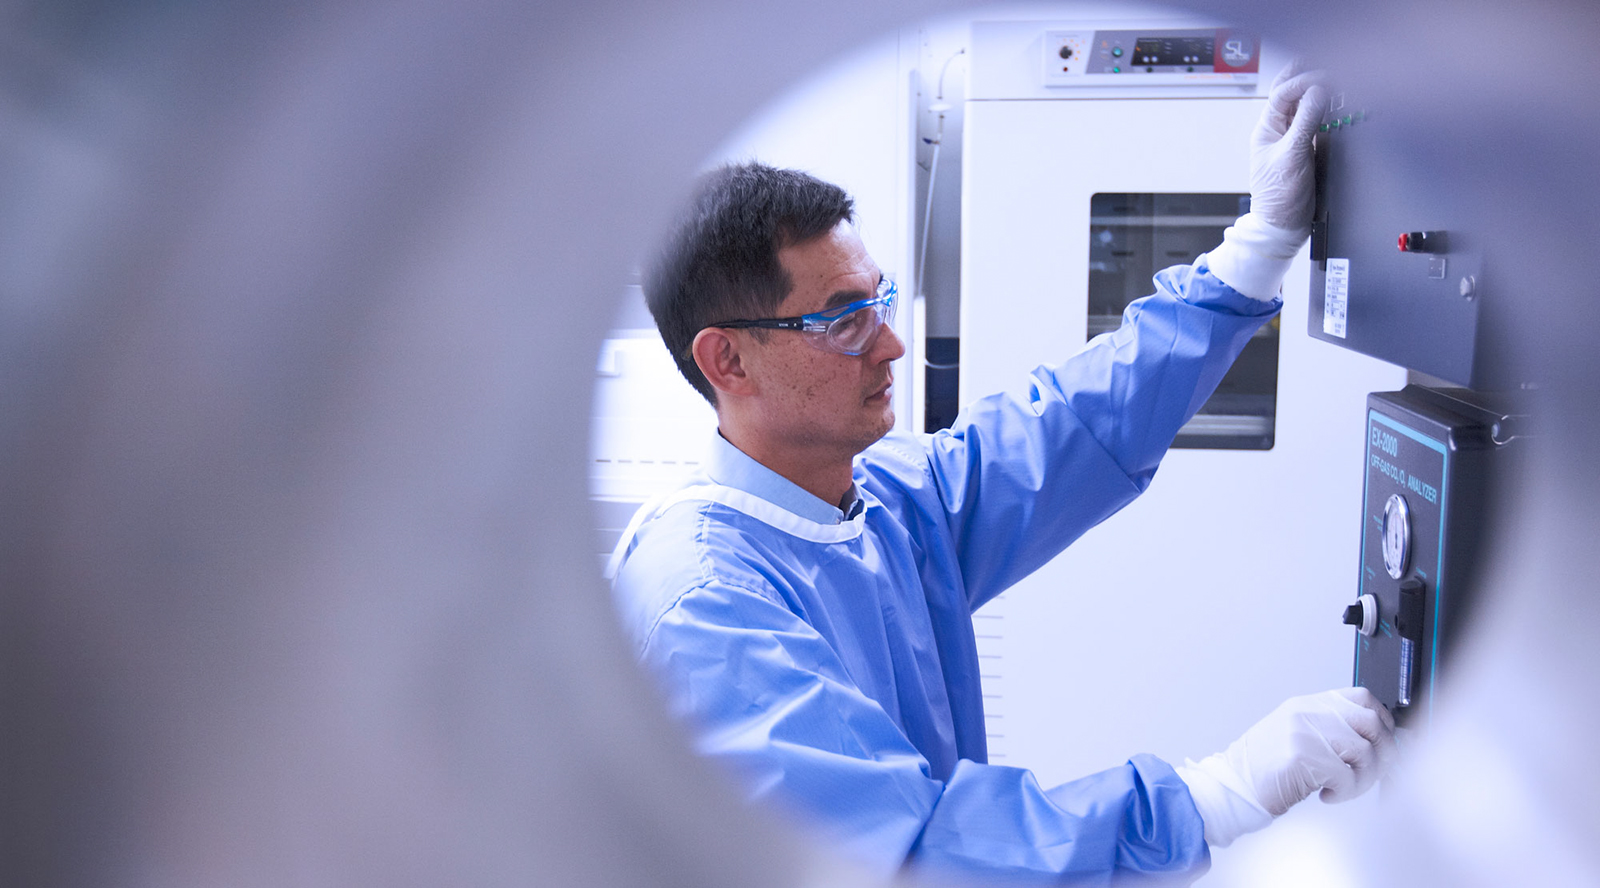 Photo of a scientist in a lab gown, gloves and safety glasses turning a dial on a 150L stirring tank bioreactor which is used for mammalian cell culture to produce recombinant protein for research.